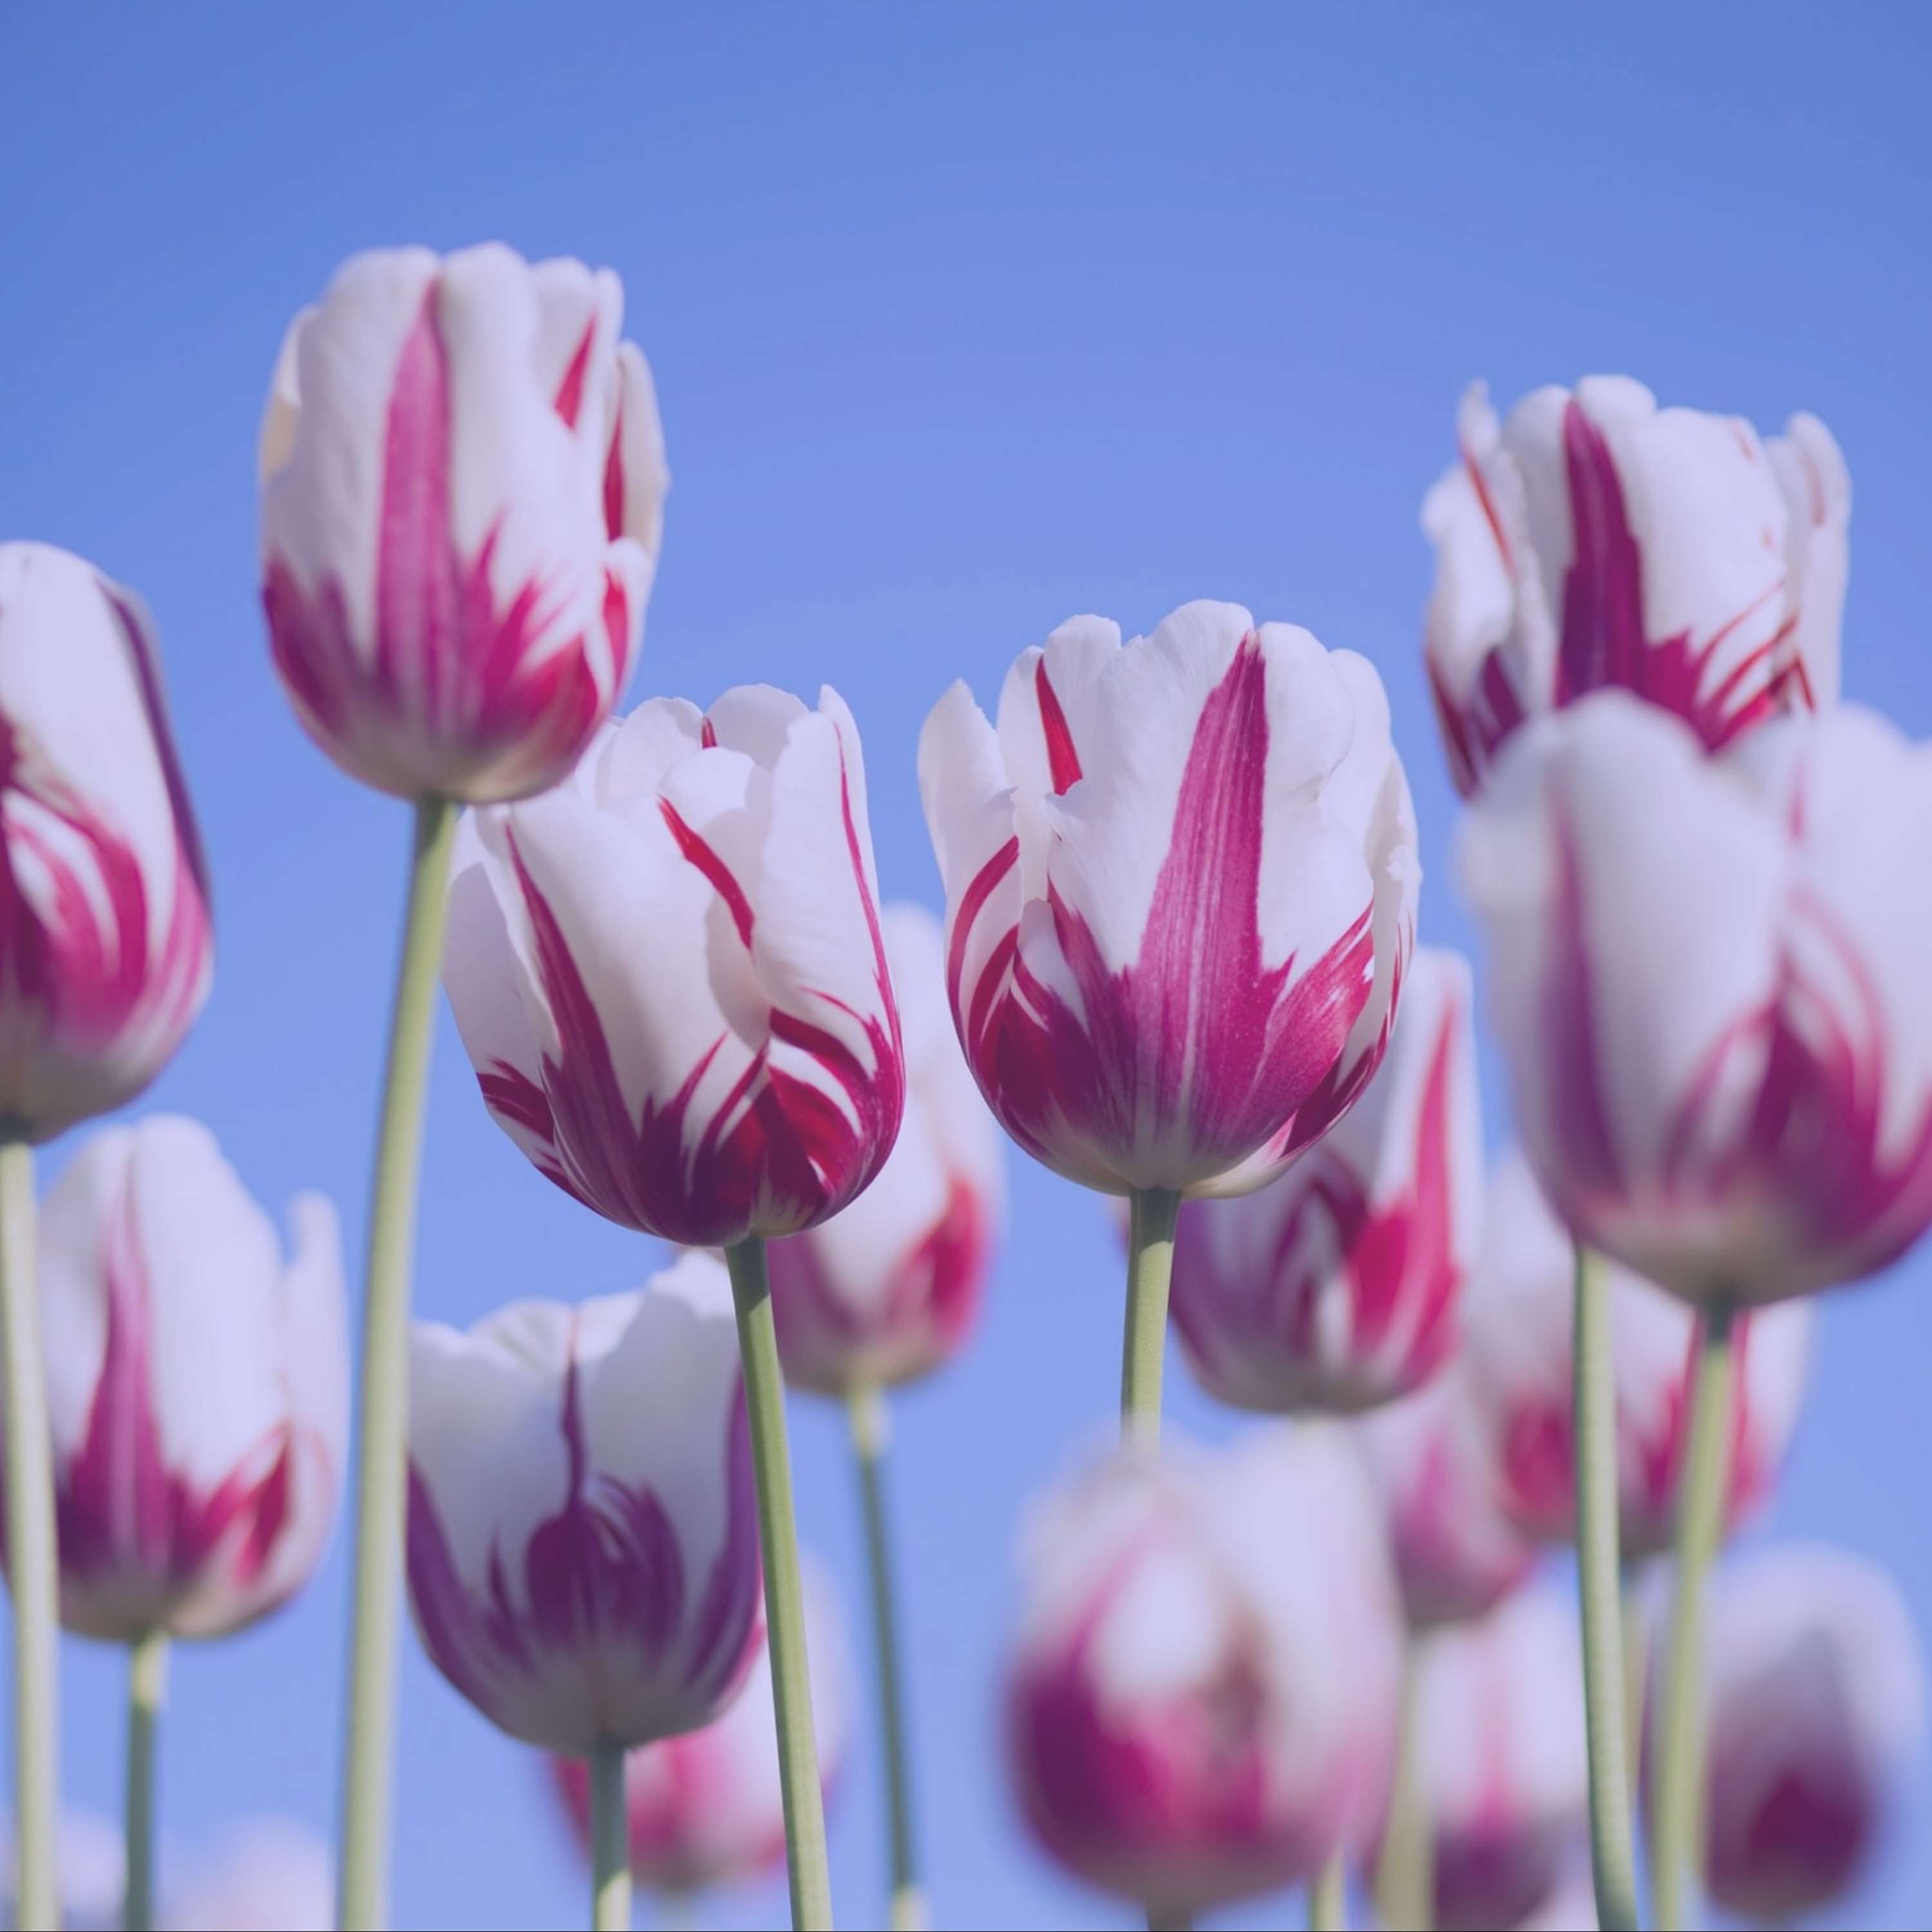 Tulipmania // When Flowers Cost More Than Houses